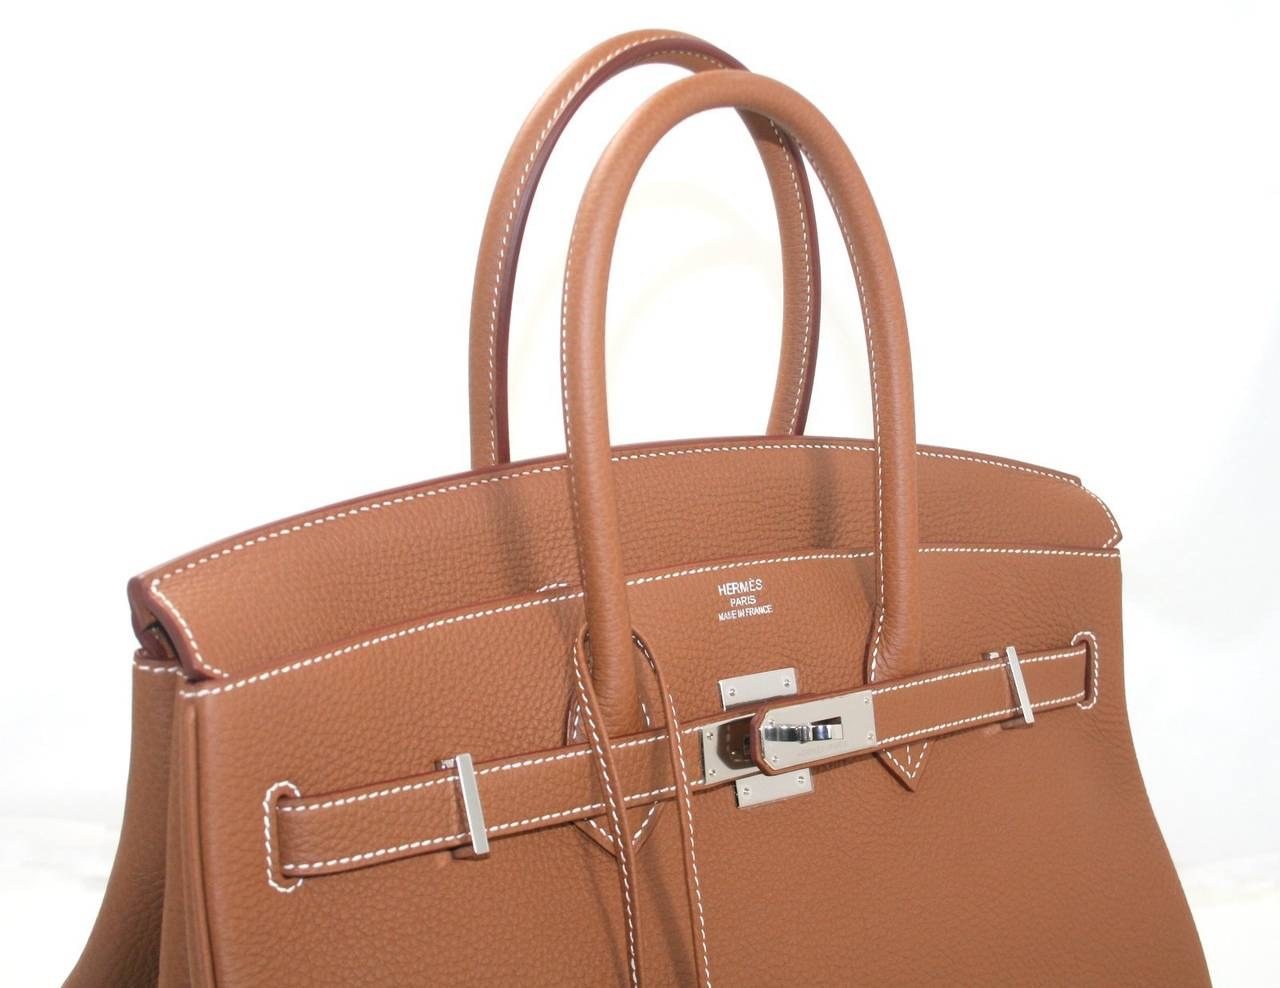 knock off hermes purse party - Hermes Birkin Bag in Gold Togo Leather PHW, 35 cm at 1stdibs